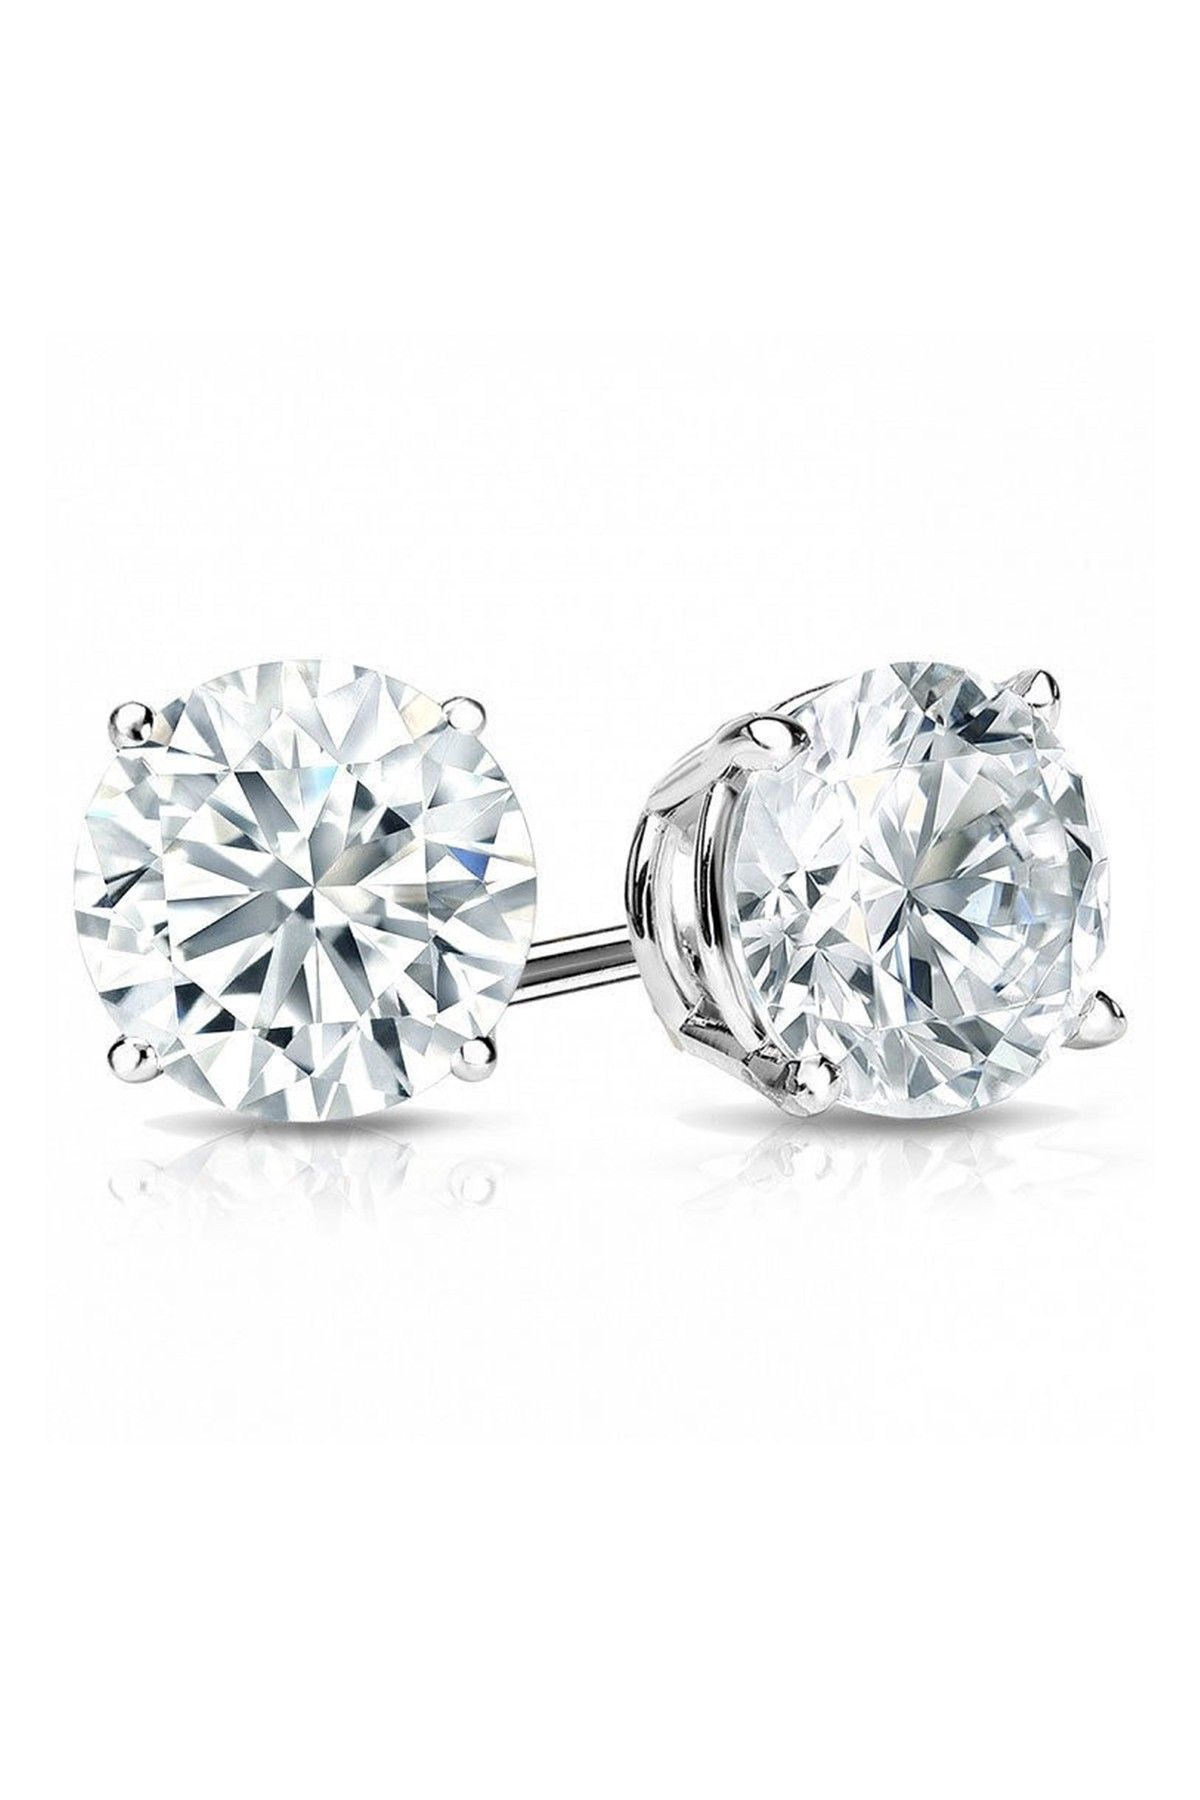 Sterling Silver Round Cut White CZ Stud Earrings